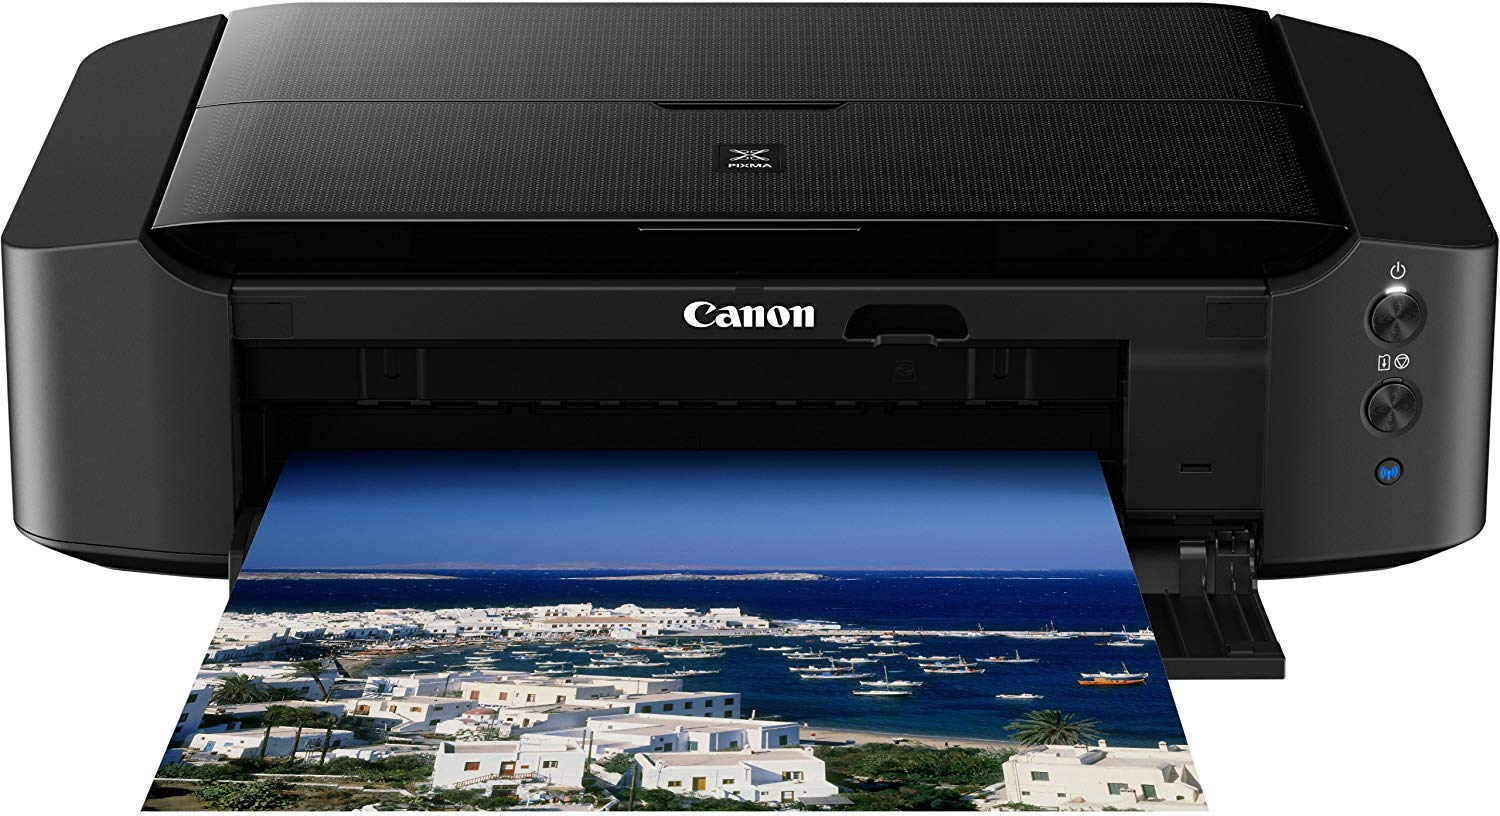 CANON STAMP. INK PIXMA IP8750 A3+ COLORE 14,5IPM USB/WIRELESS